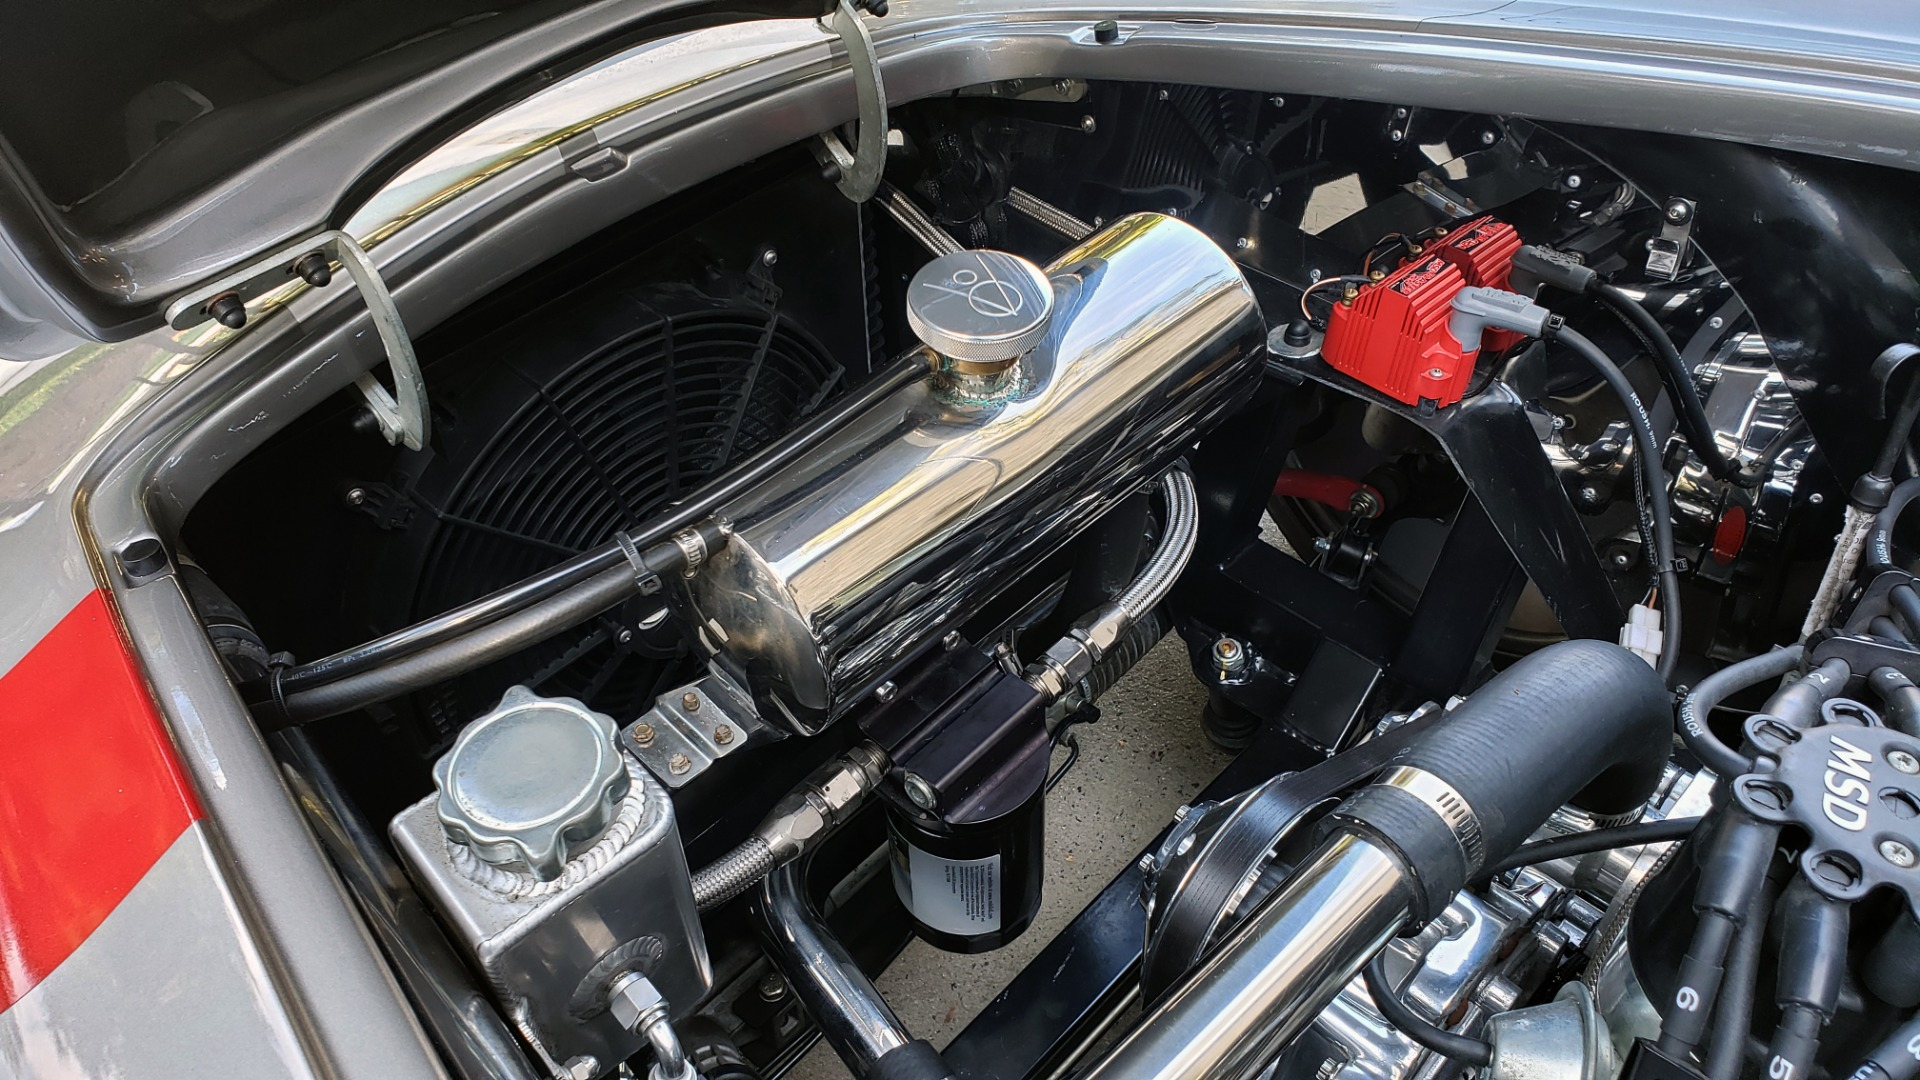 Used 1965 Ford COBRA 427 ROADSTER BY BRACKDRAFT RACING ROUSH 553HP V8 / TREMEC 6-SPD / PWR STRNG for sale $74,999 at Formula Imports in Charlotte NC 28227 44